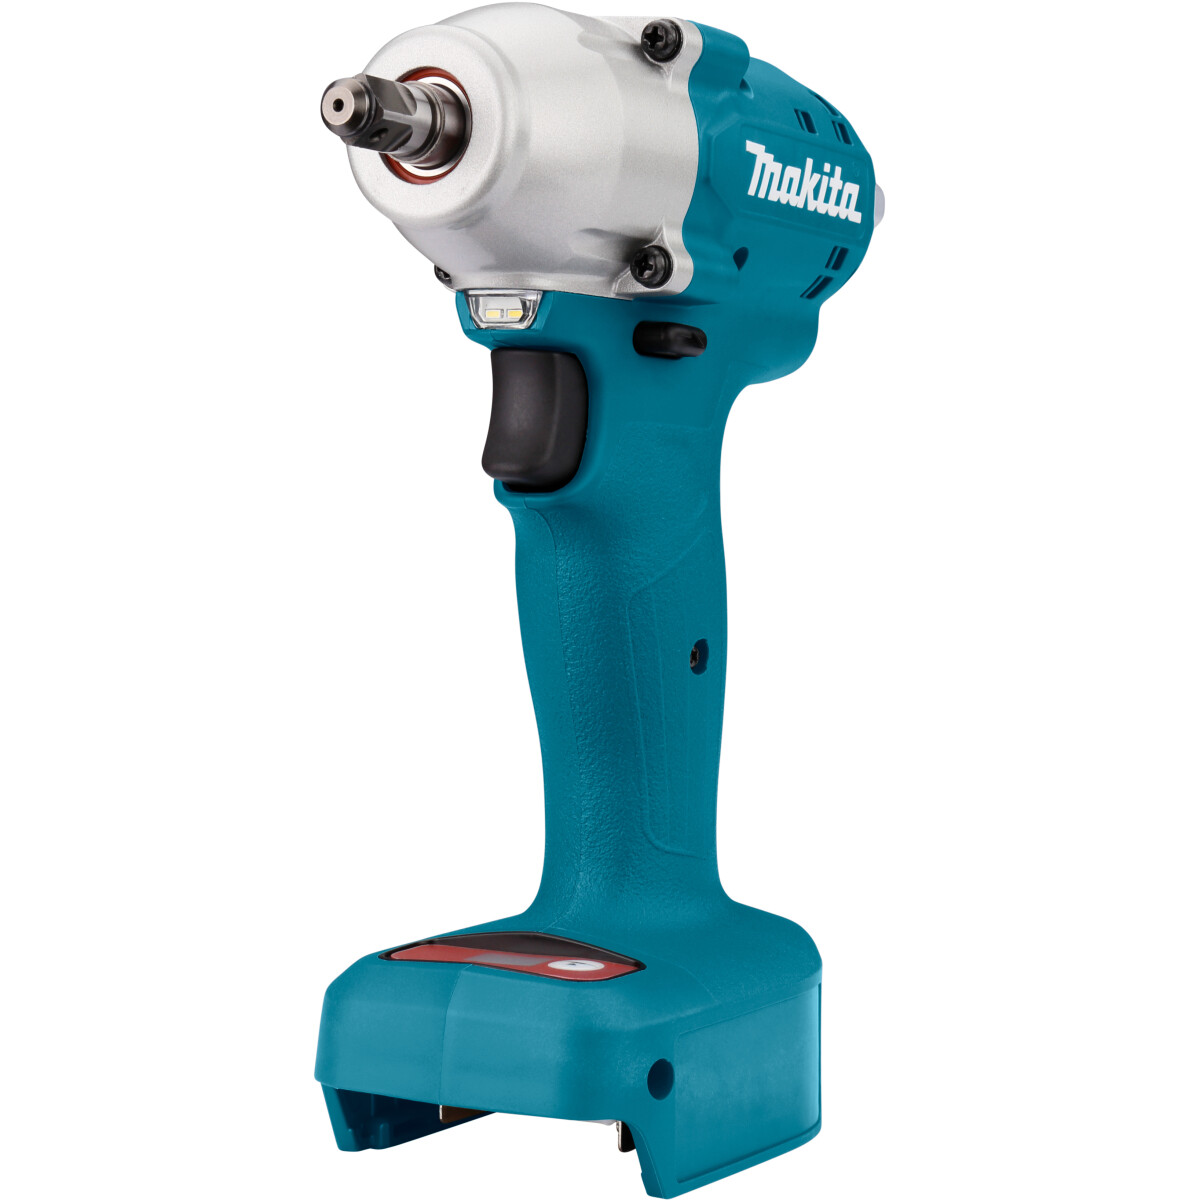 Makita DTWA100Z 14.4v Body Only Brushless Impact Wrench